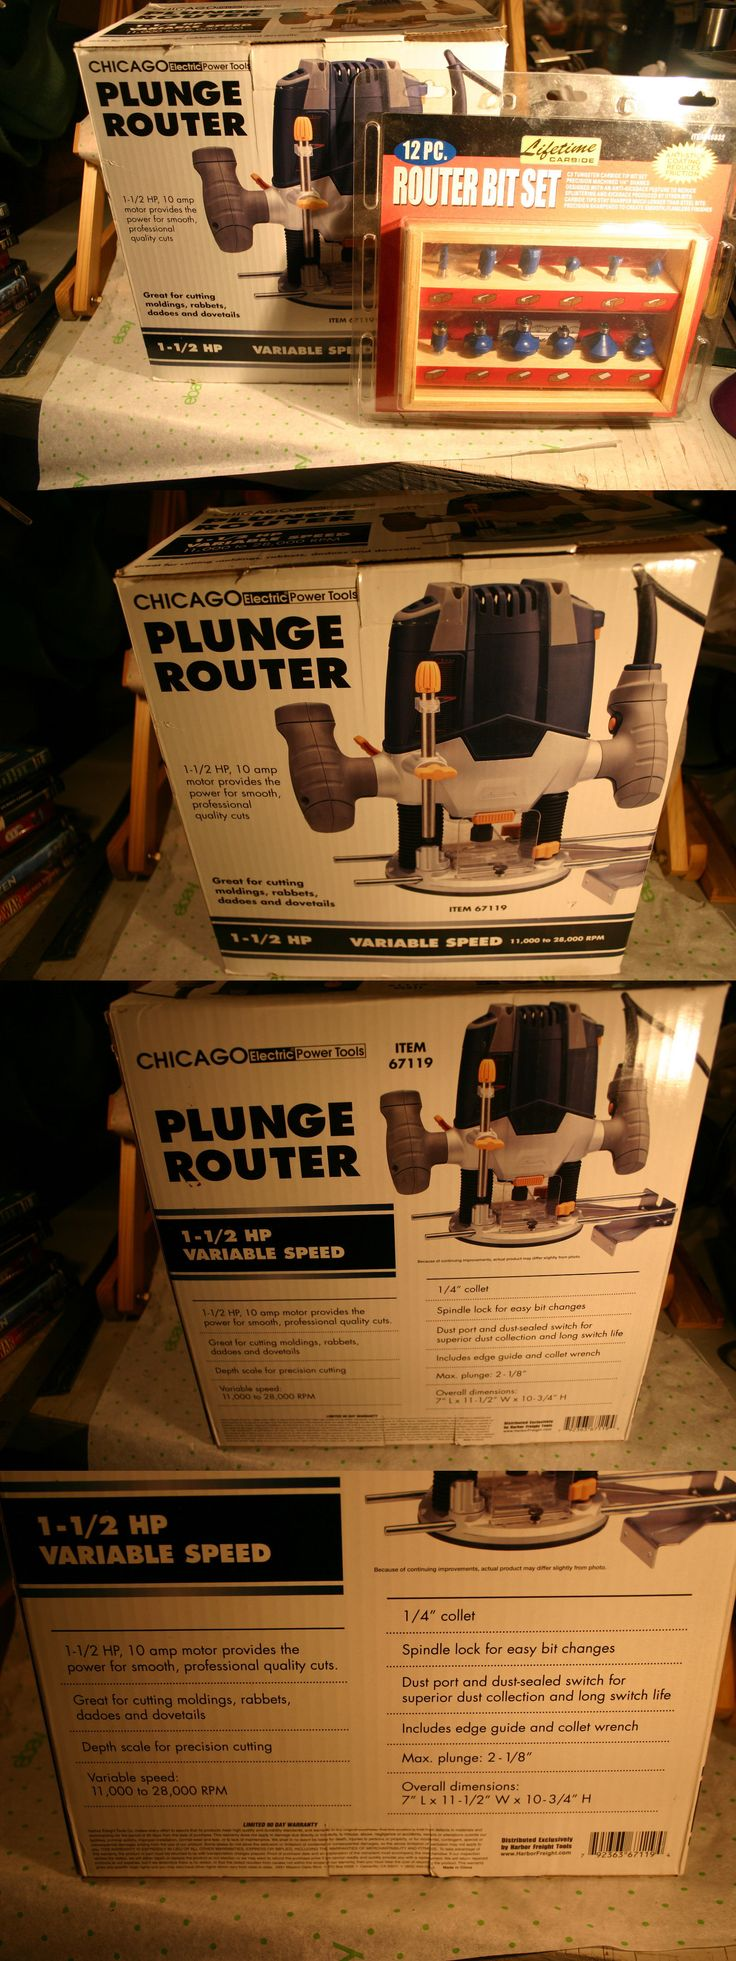 Routers 122829: 1 1 2 Hp Plunge Router With 12Pc Bit Set, New -> BUY IT NOW ONLY: $79.19 on eBay!